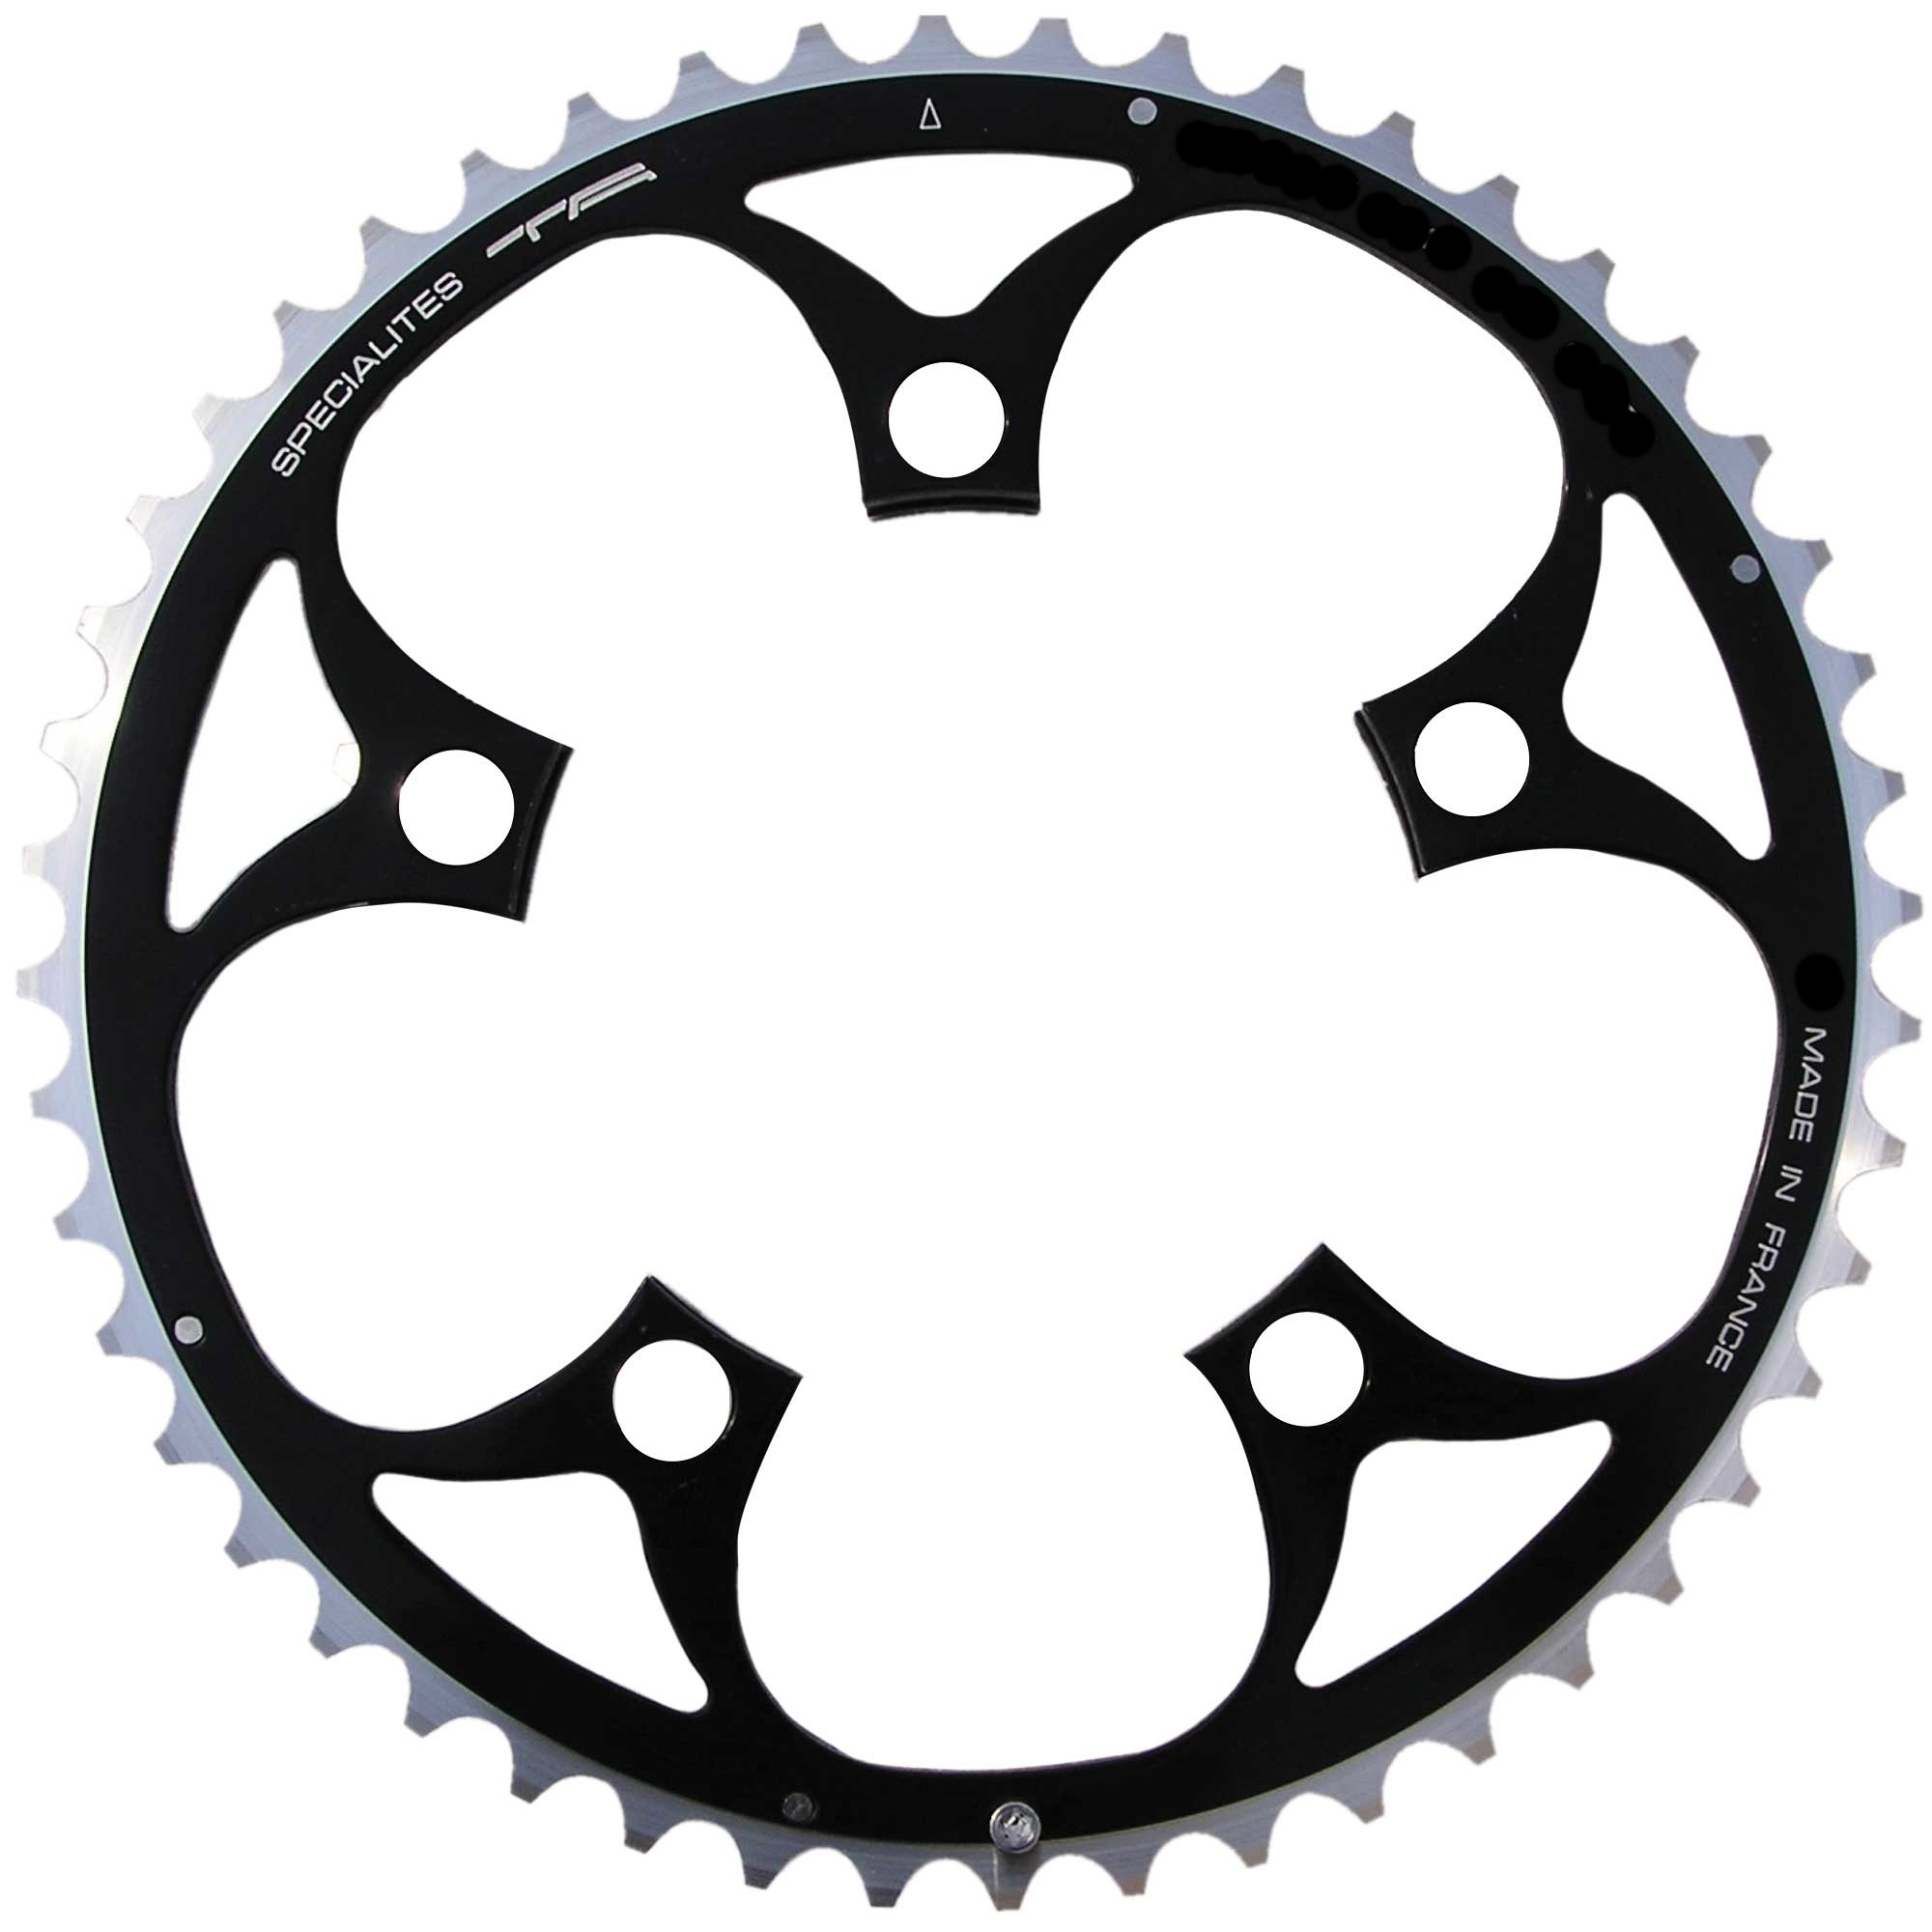 TA Chainring 94 bcd for Shimano 5 bolt Compact MTB chainsets